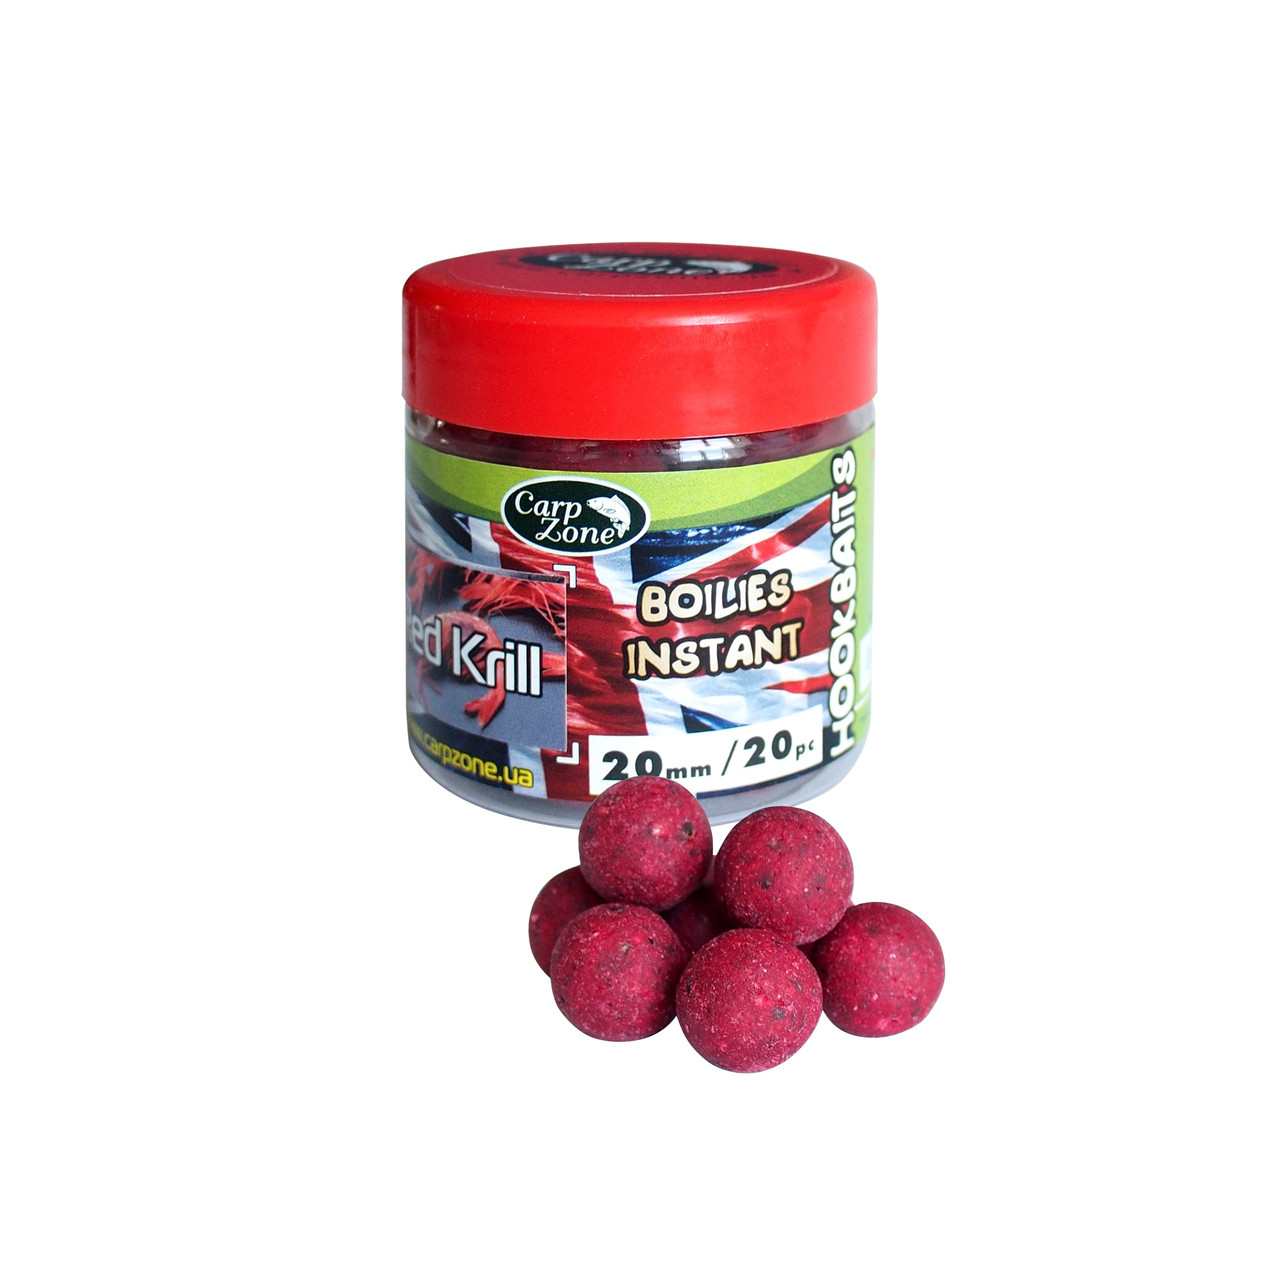 Бойлы насадочные вареные Boilies English series Instant Hookbaits Red Кrill 20mm  / 20pc